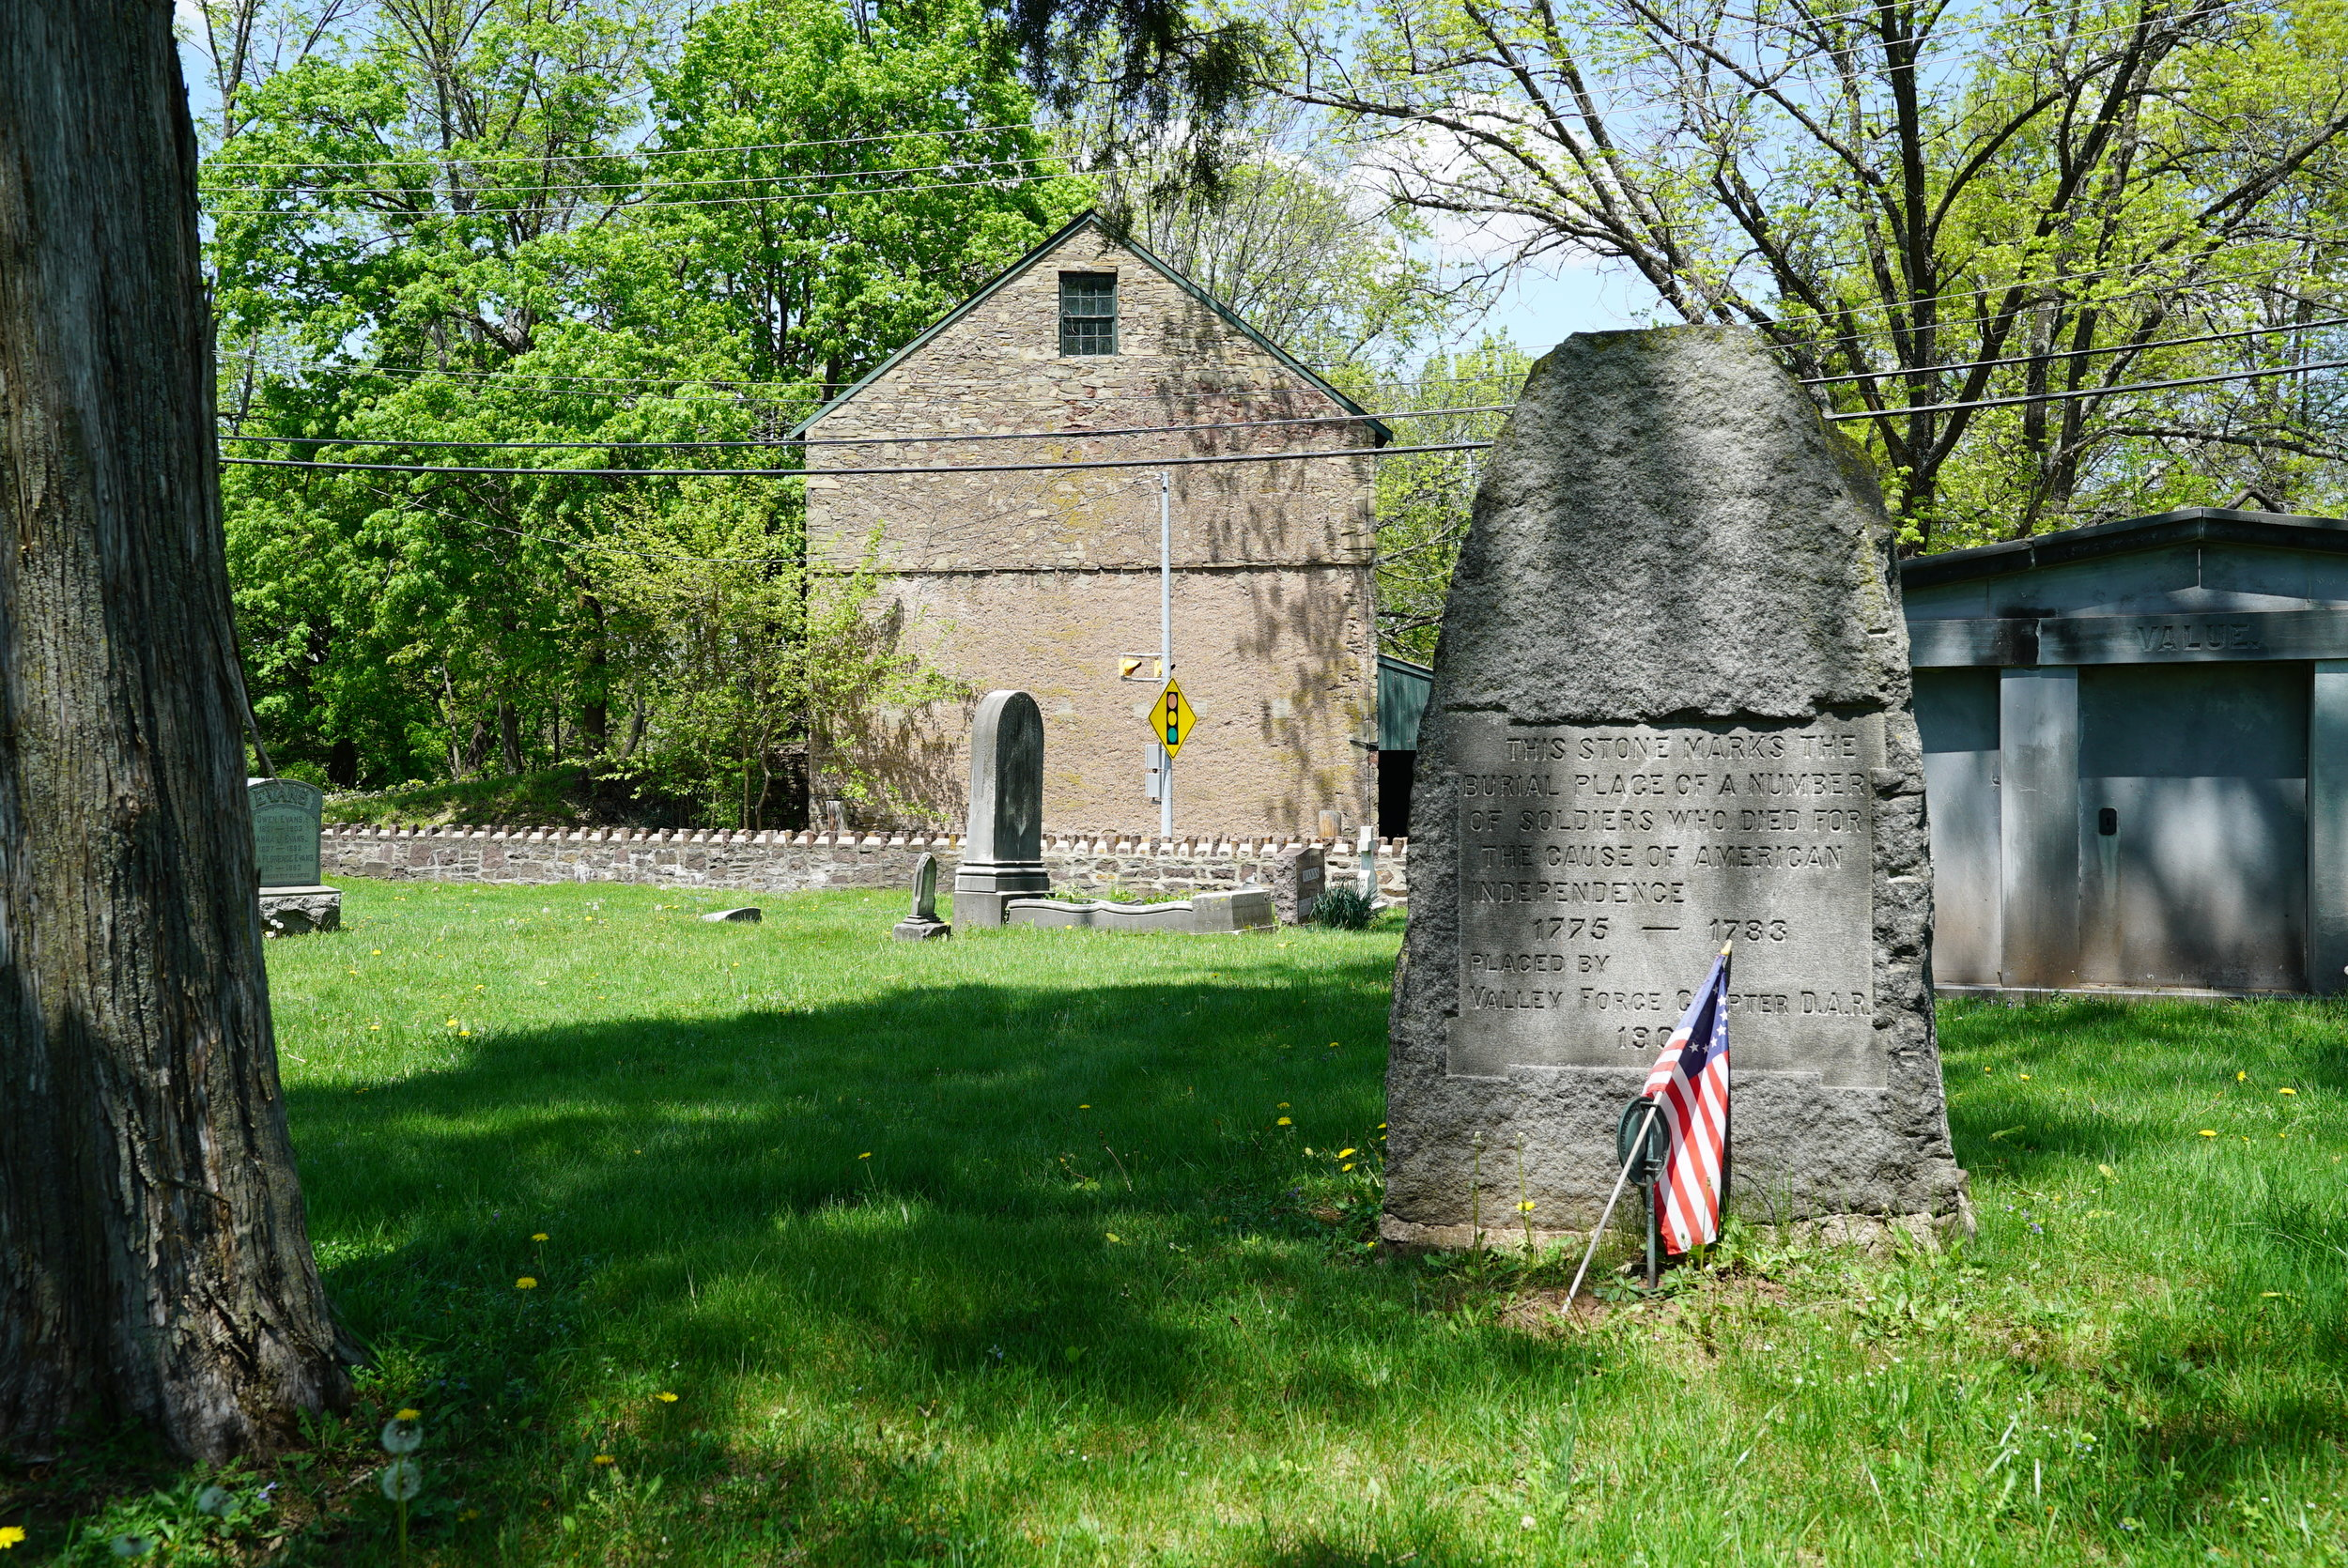 Monument to fallen revolutionary war soldiers. St. James Cemetery. Collegeville area of Montgomery County, Pennsylvania.